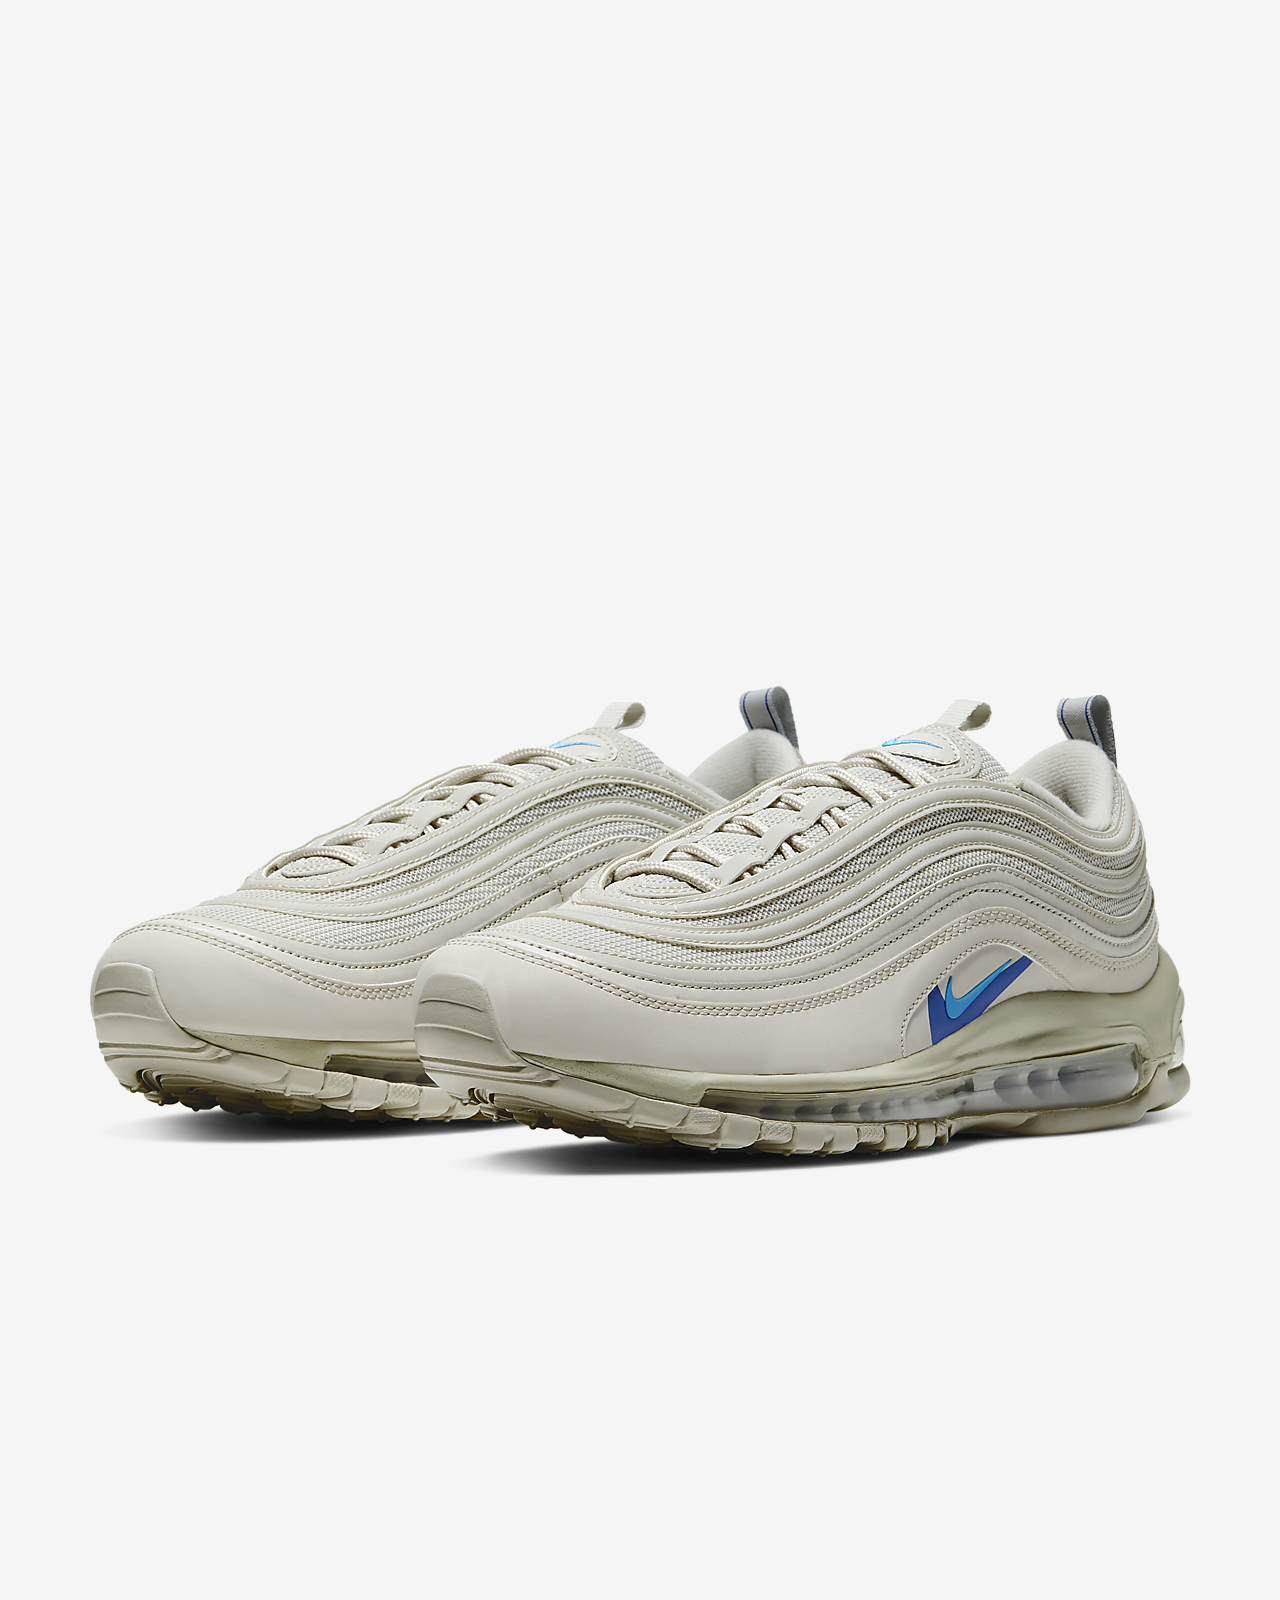 Junior Footwear (Sizes 3 5.5) Nike Air Max 97 OG JD Sports